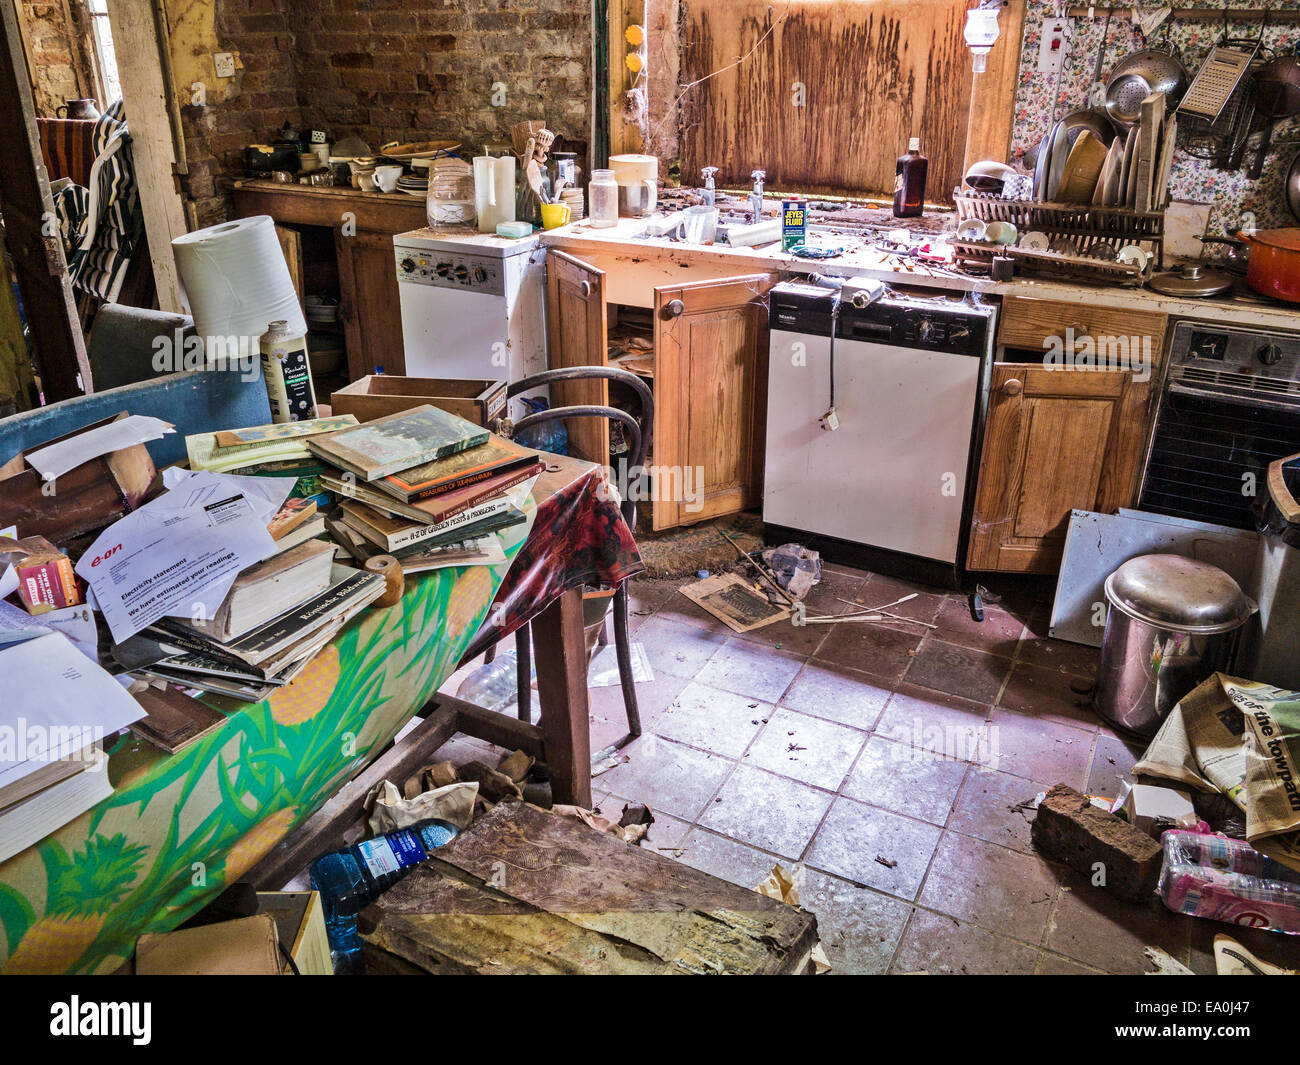 The kitchen of an abandoned and derelict house - Stock Image